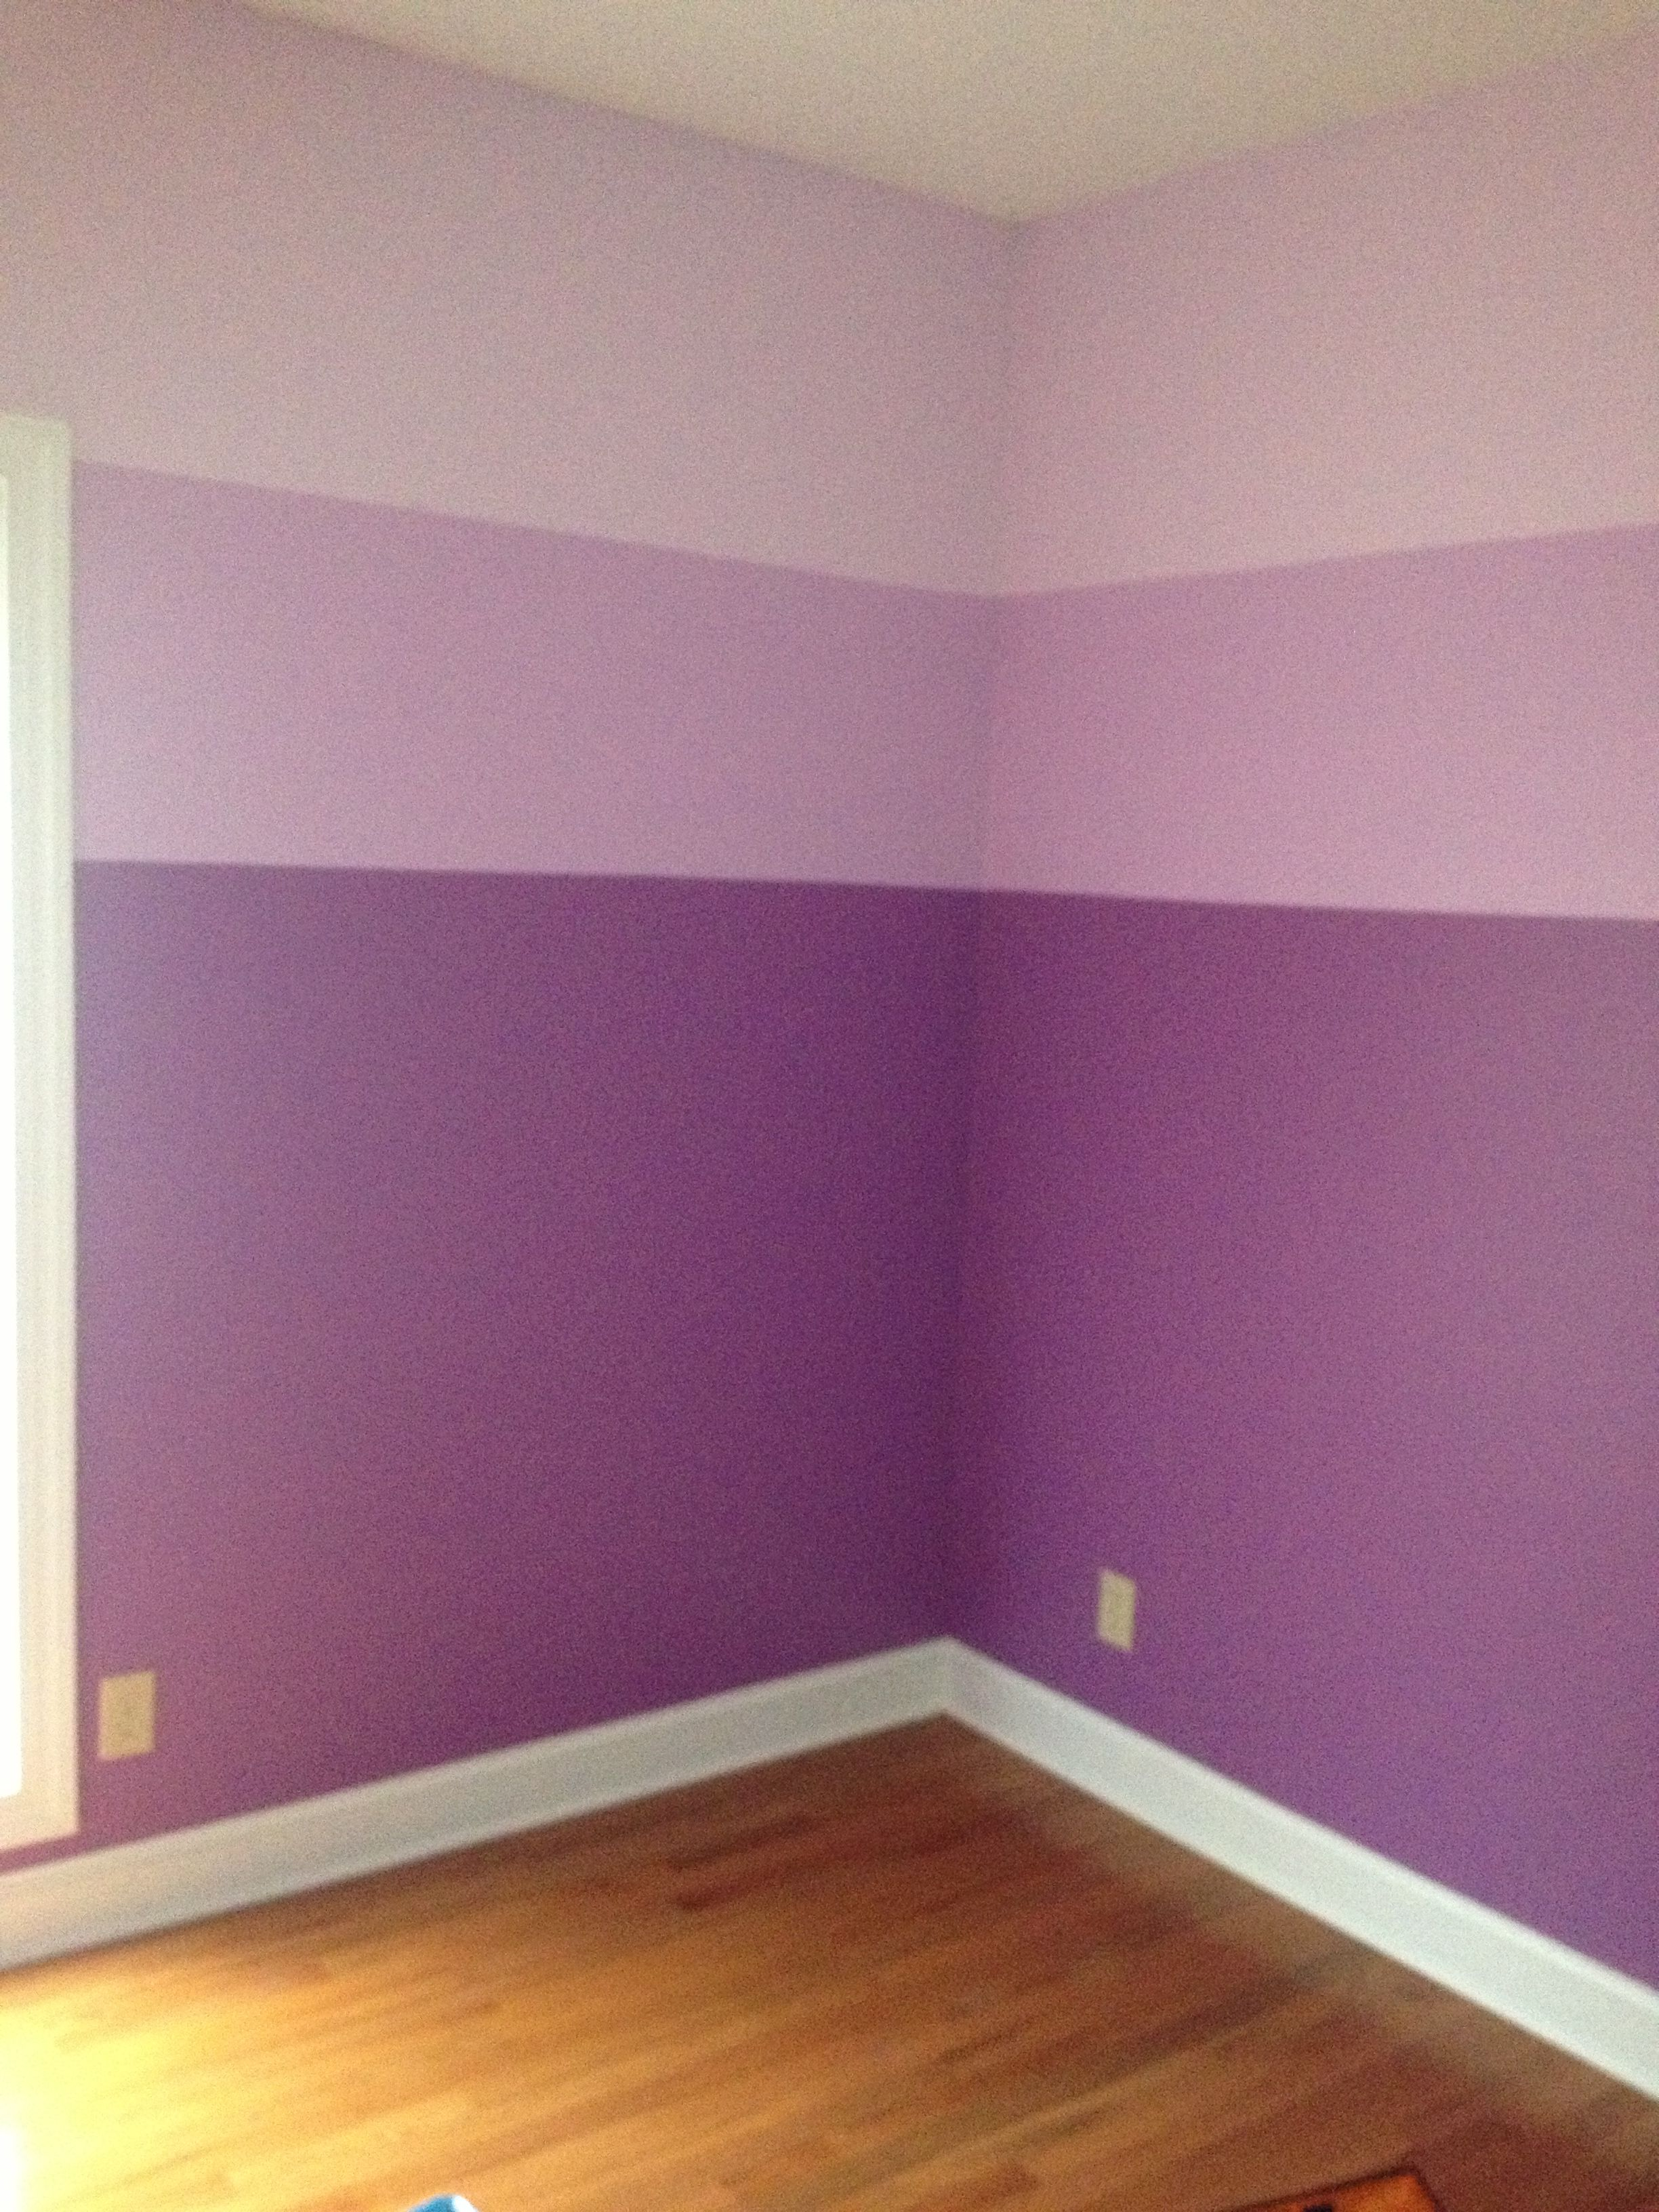 The S Ombré Purple Bedroom I Painted Used Lightest And Darkest Colors On A Paint Card Then Mixed Both For Middle Color